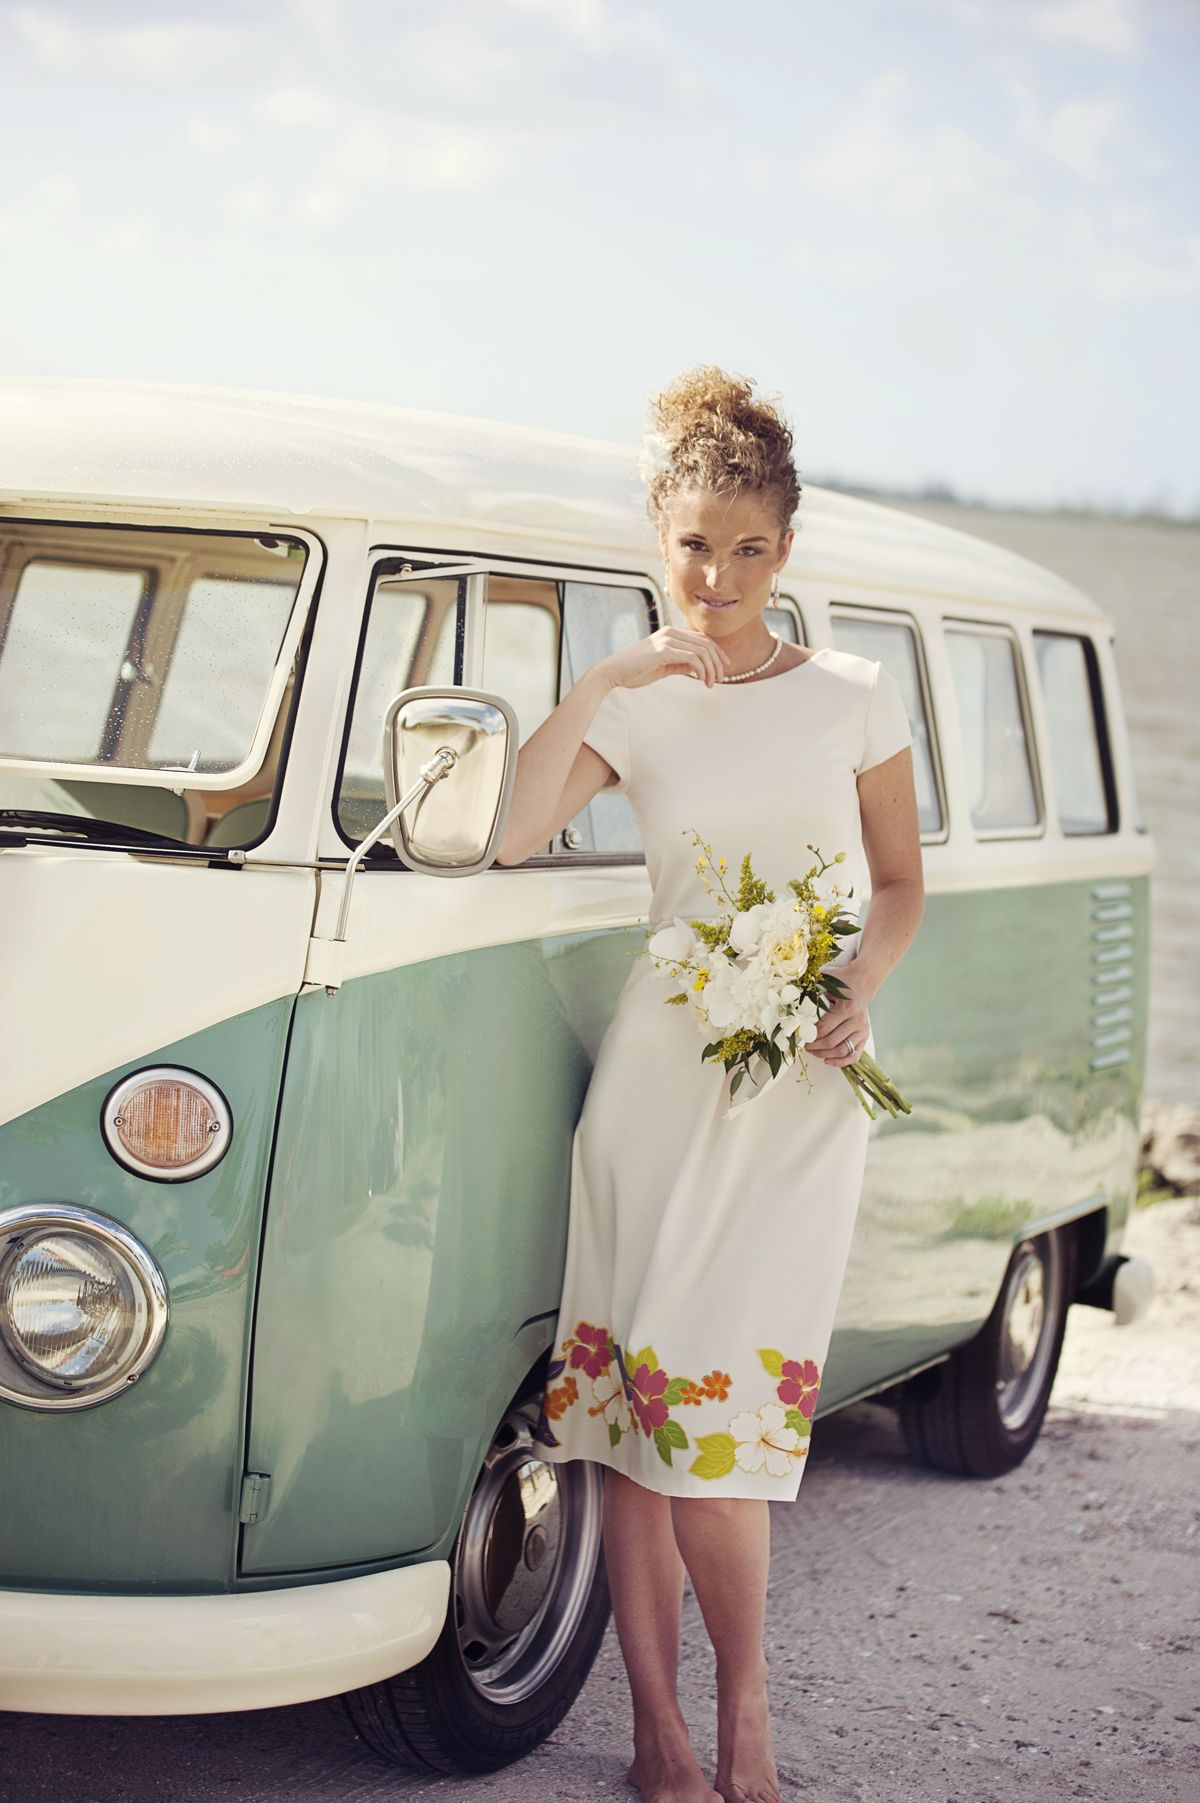 Vintage car as wedding transportation #vintage #beach  For more insipiration visit us at https://facebook.com/theweddingcompanyni or http://www.theweddingcompany.ie